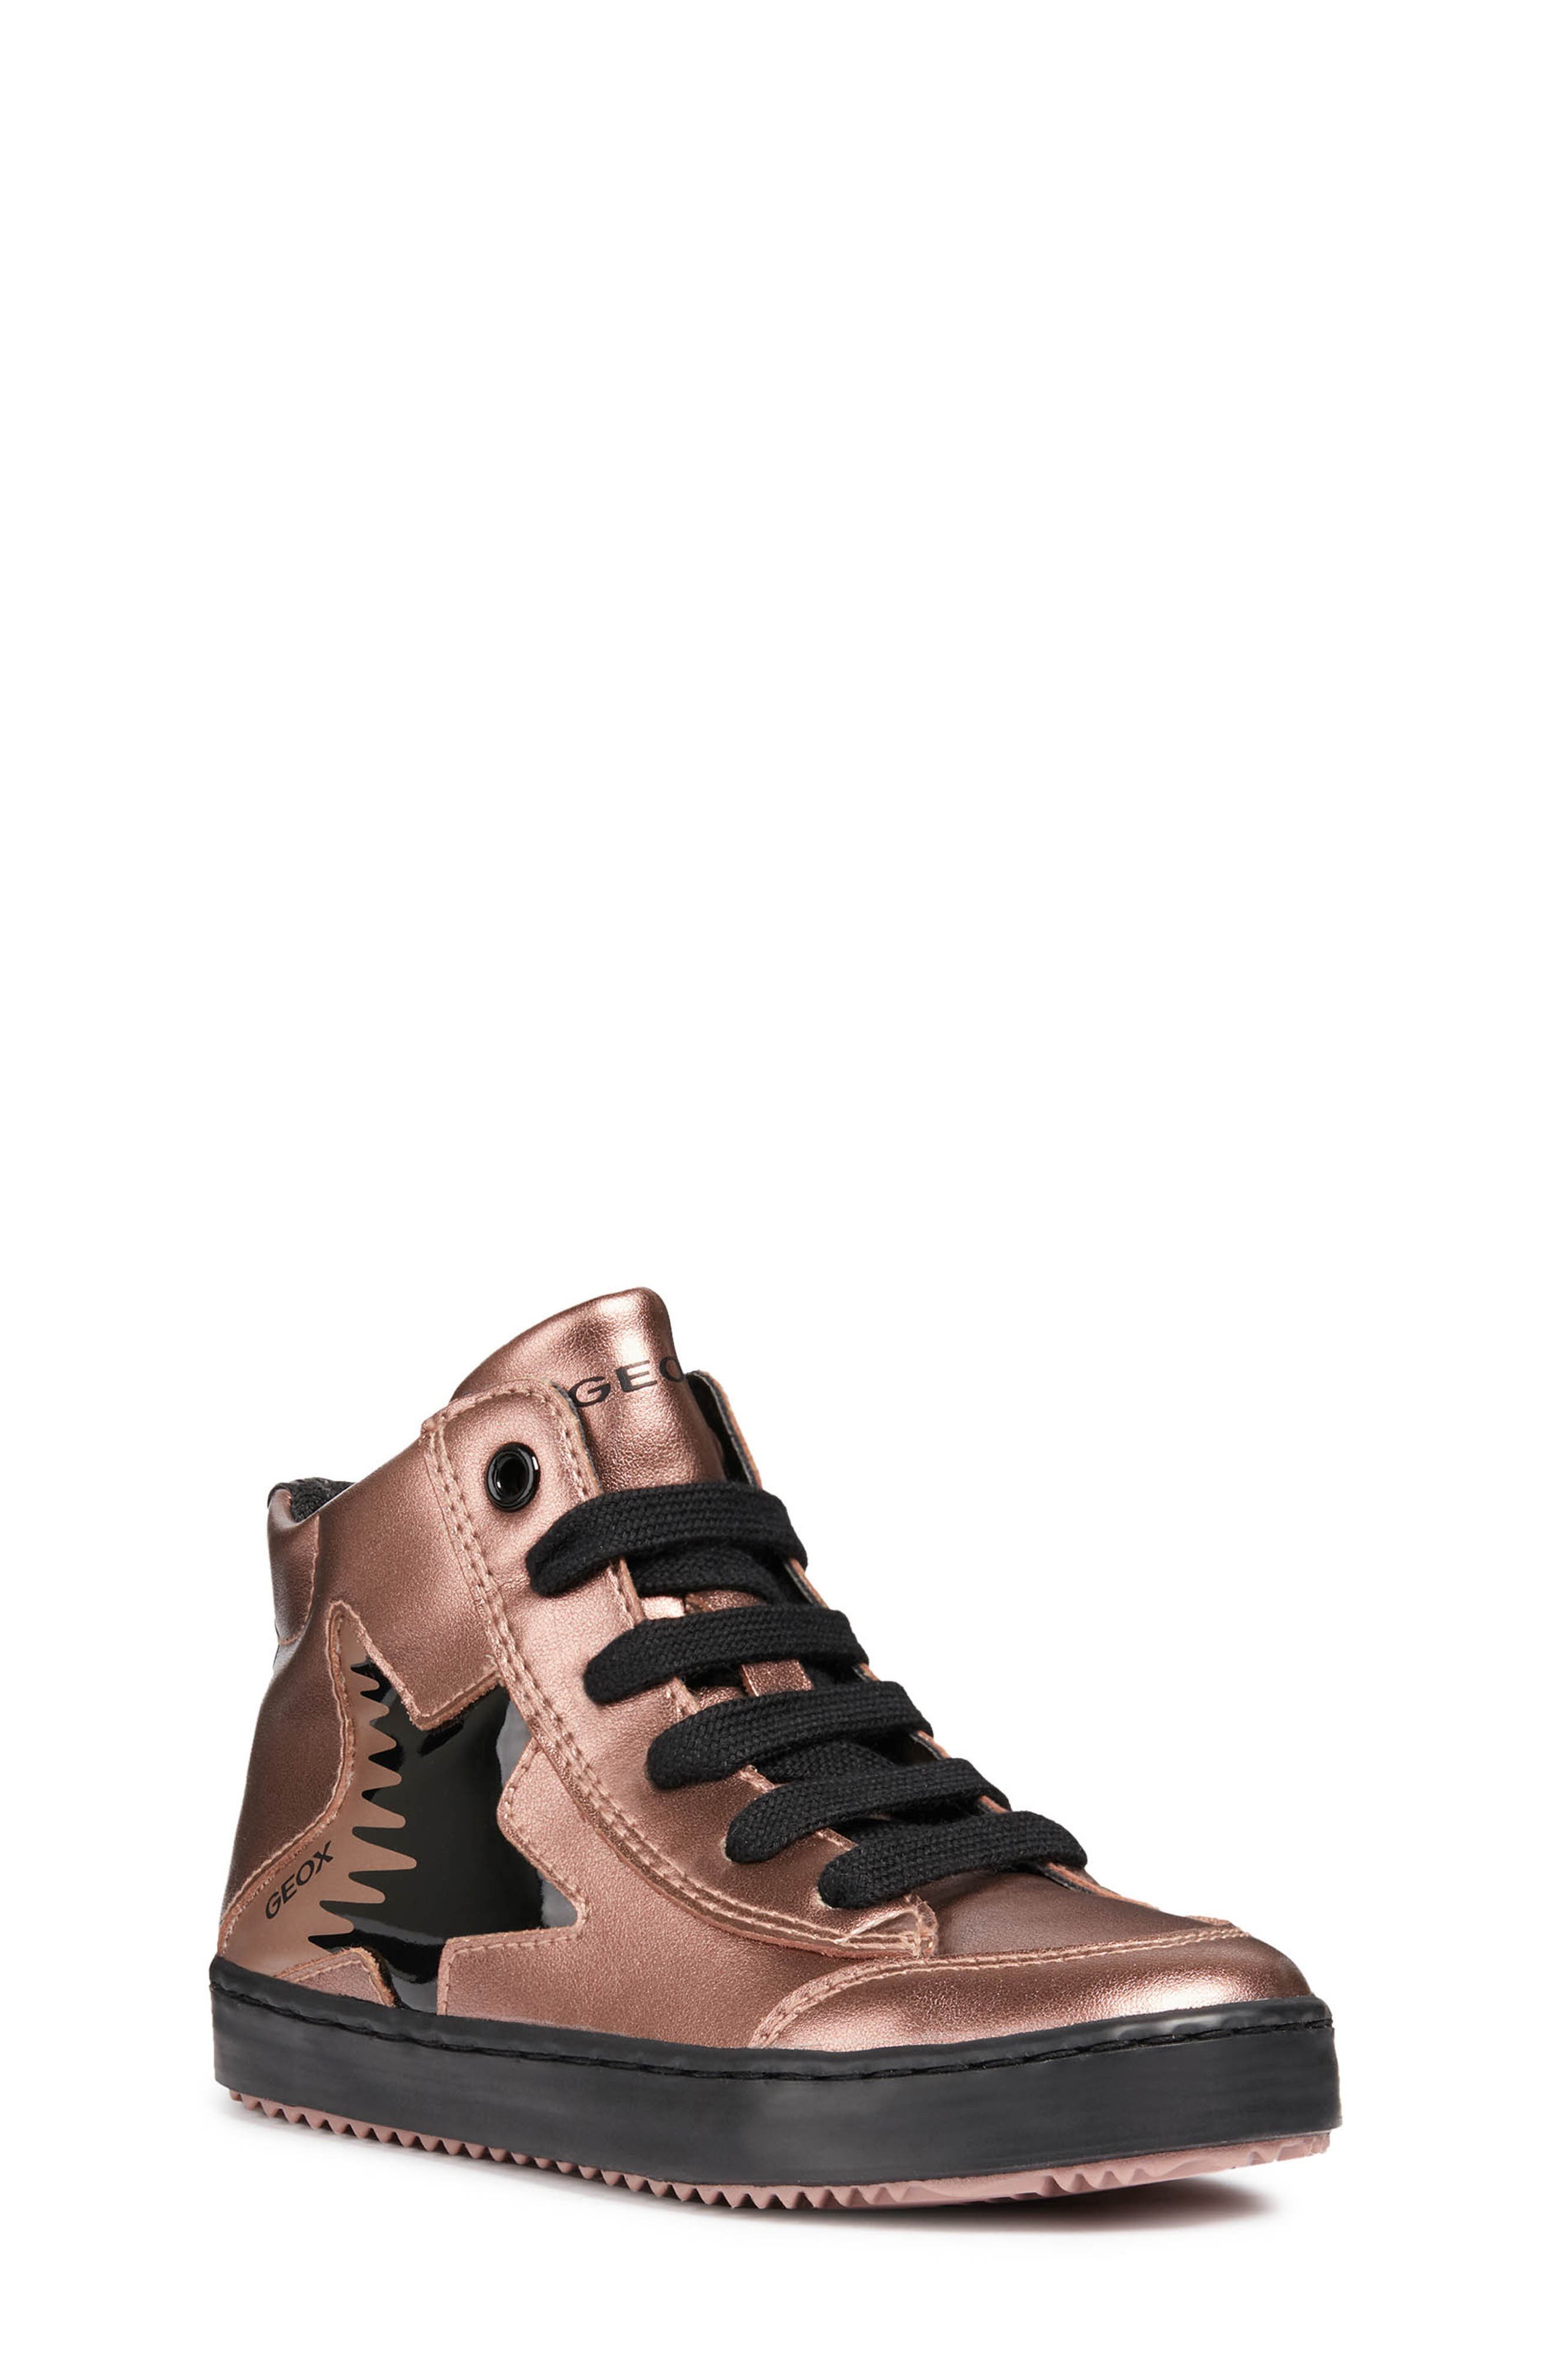 Kalispera Metallic High Top Sneaker,                             Main thumbnail 1, color,                             ROSE SMOKE